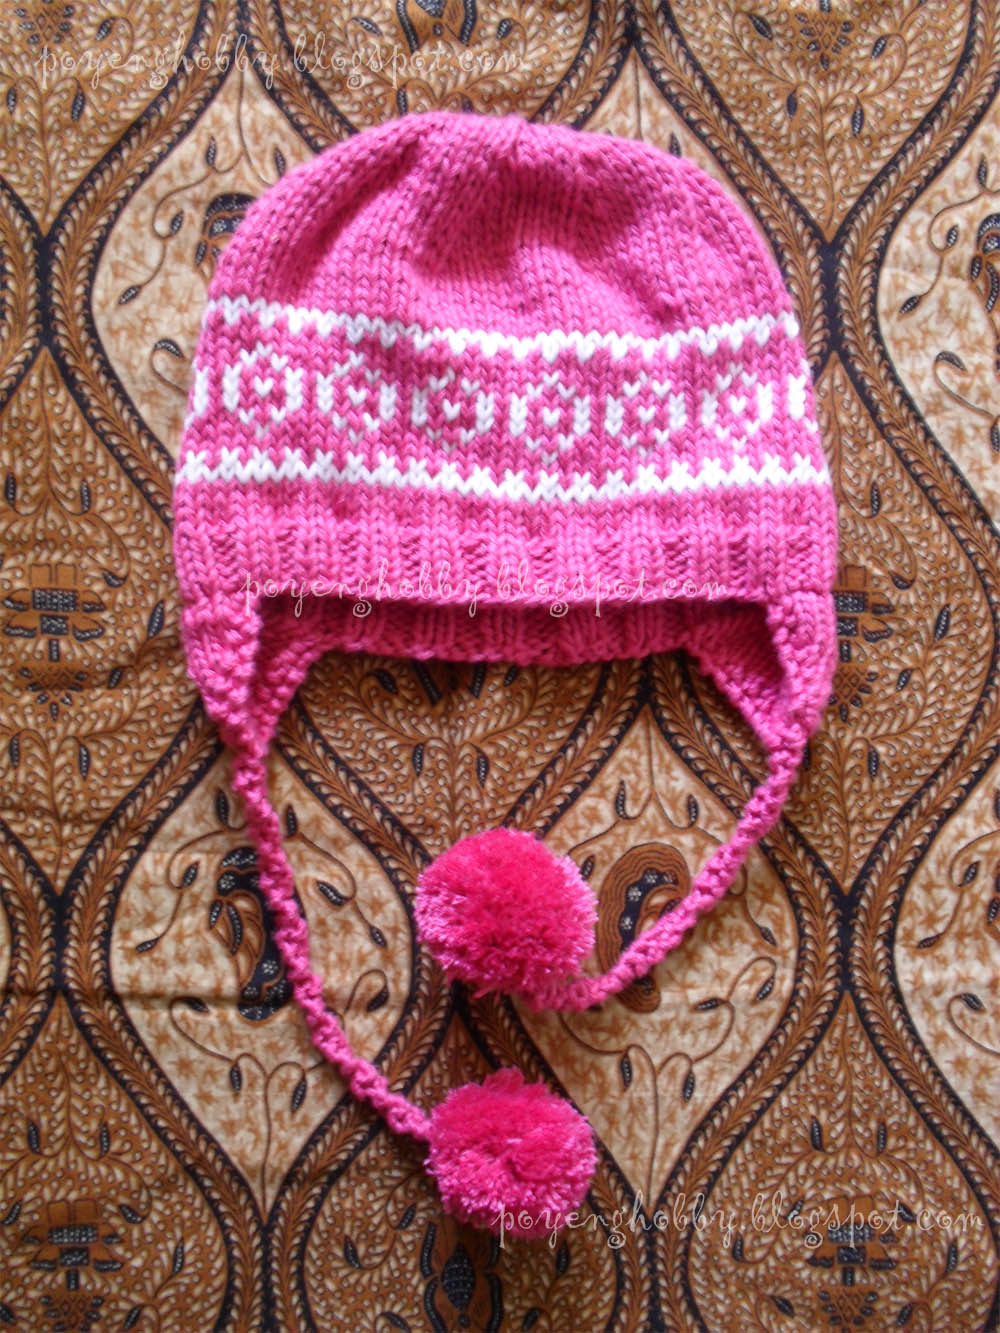 Easy Knitting Pattern Hat With Ear Flaps : Ajeng Belajar Merajut: Rajut Free Knitting Pattern : Ear Flap Hat with motive